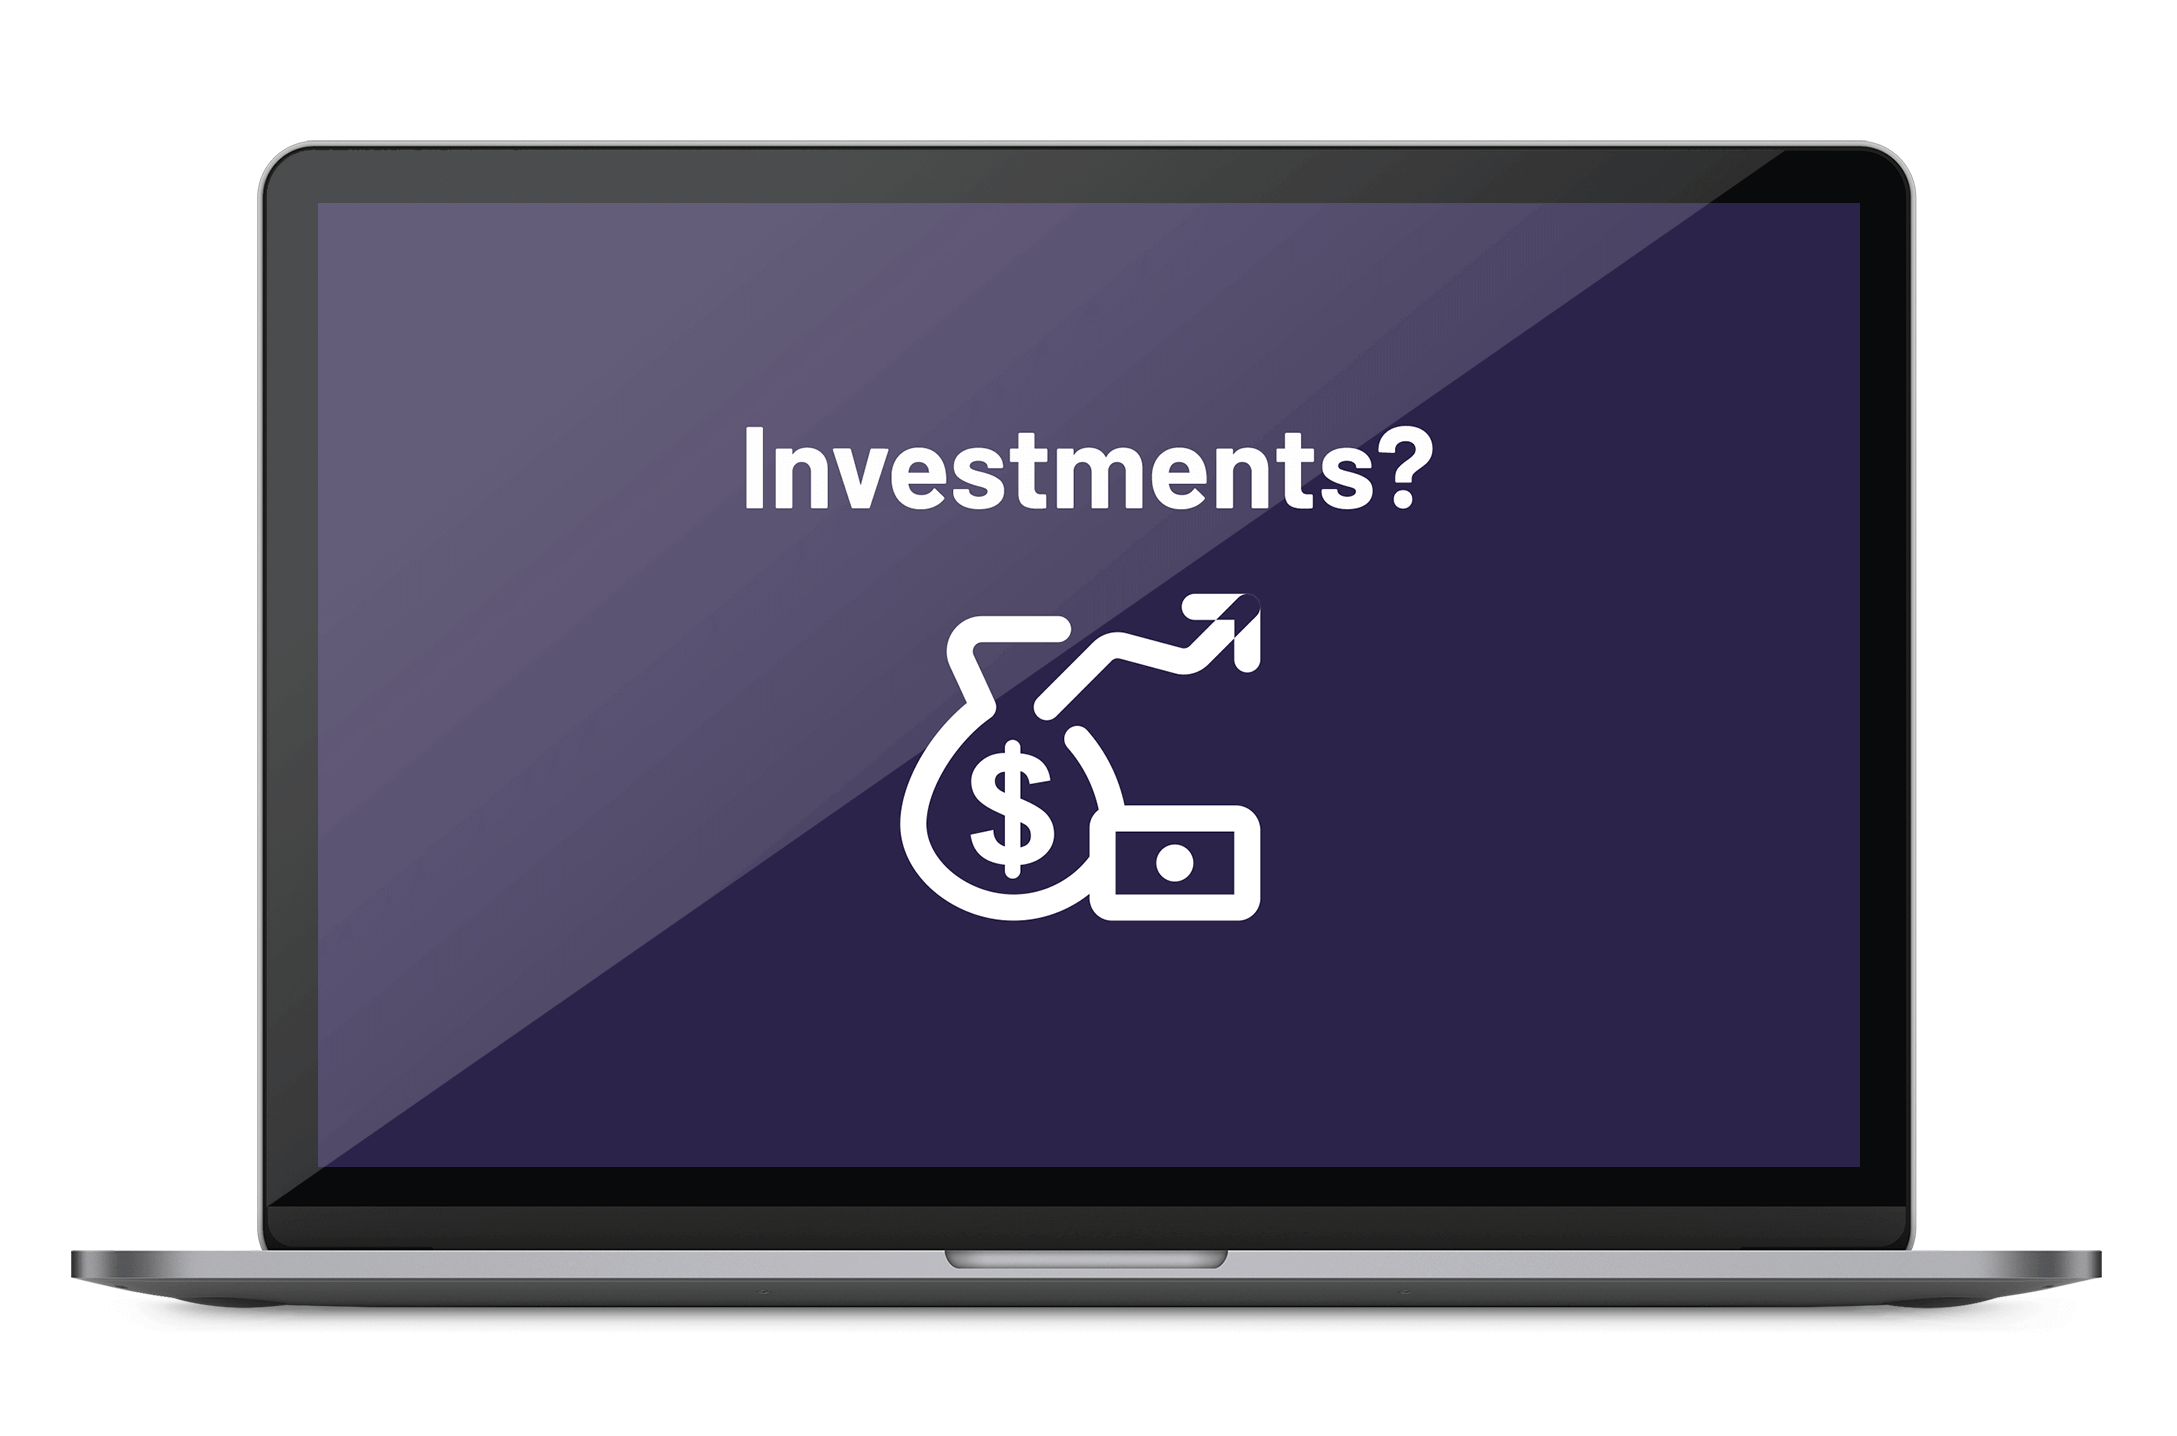 Laptop displaying a text 'Investment?' and dollar sign going up icon